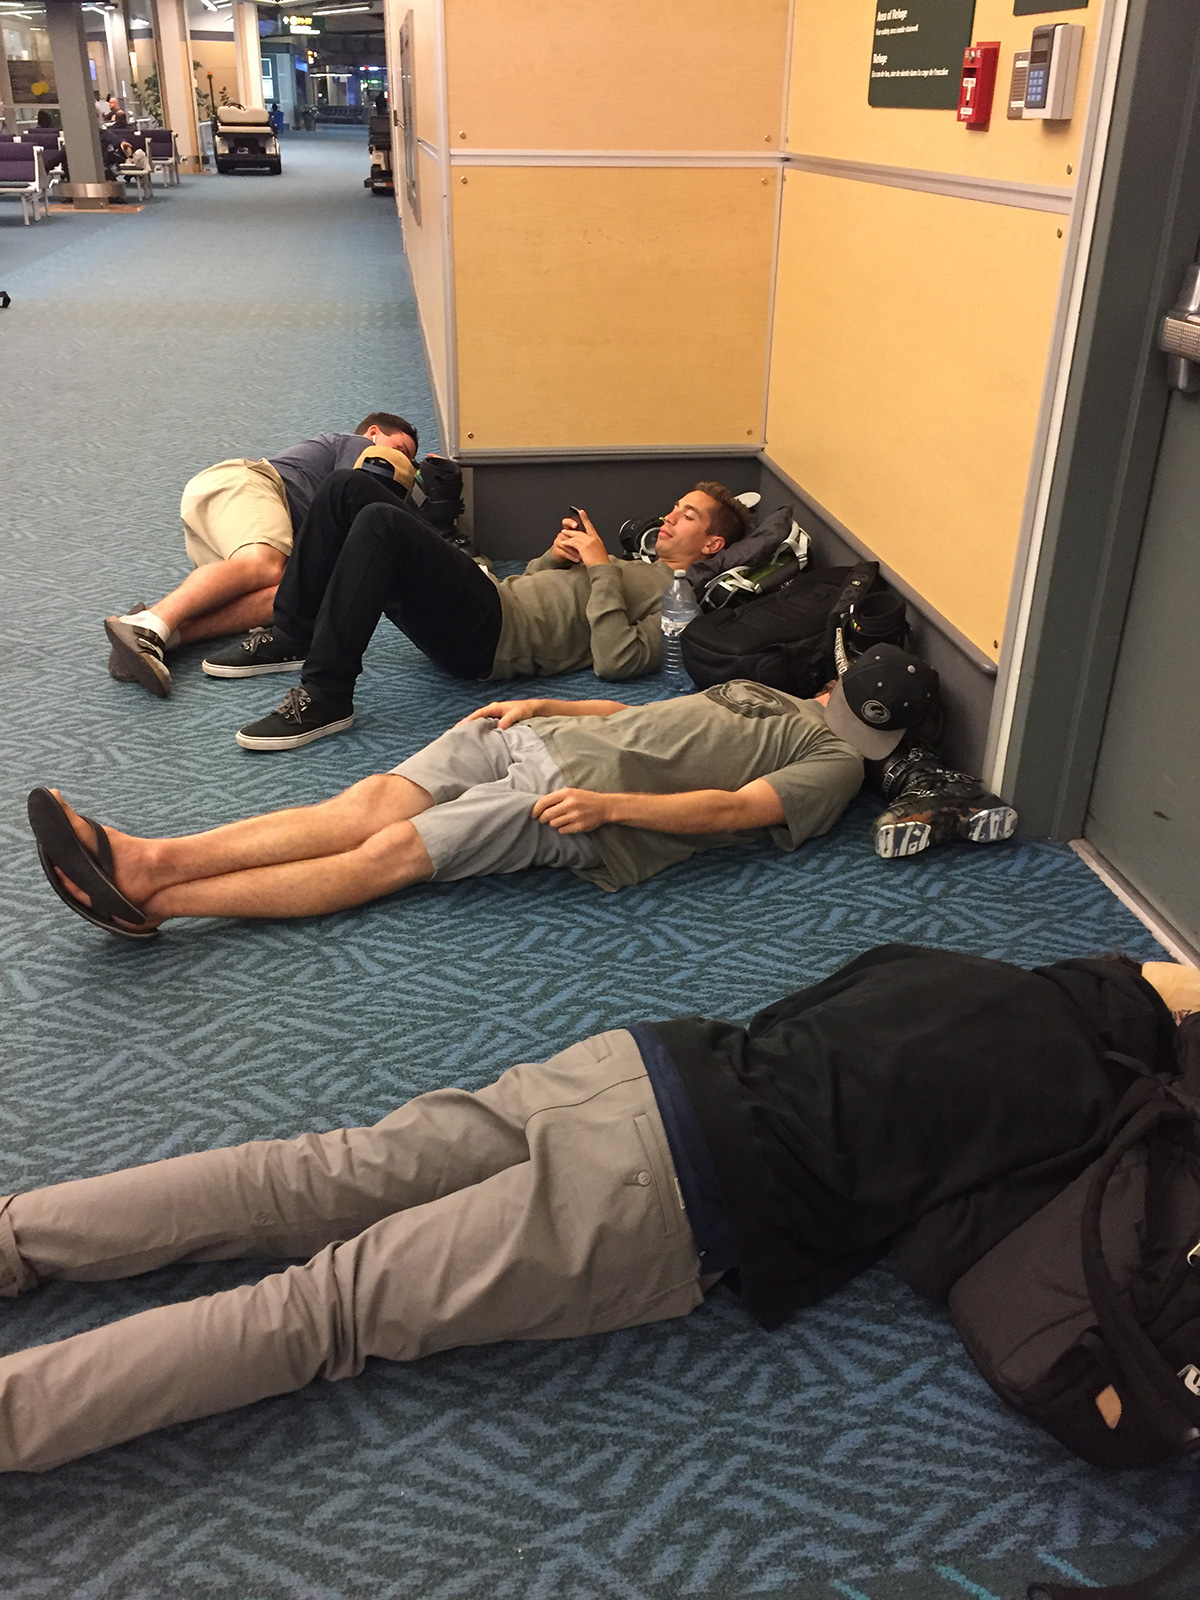 Teammates and I sleeping on the floor of the airport while waiting for our plane to be fixed…